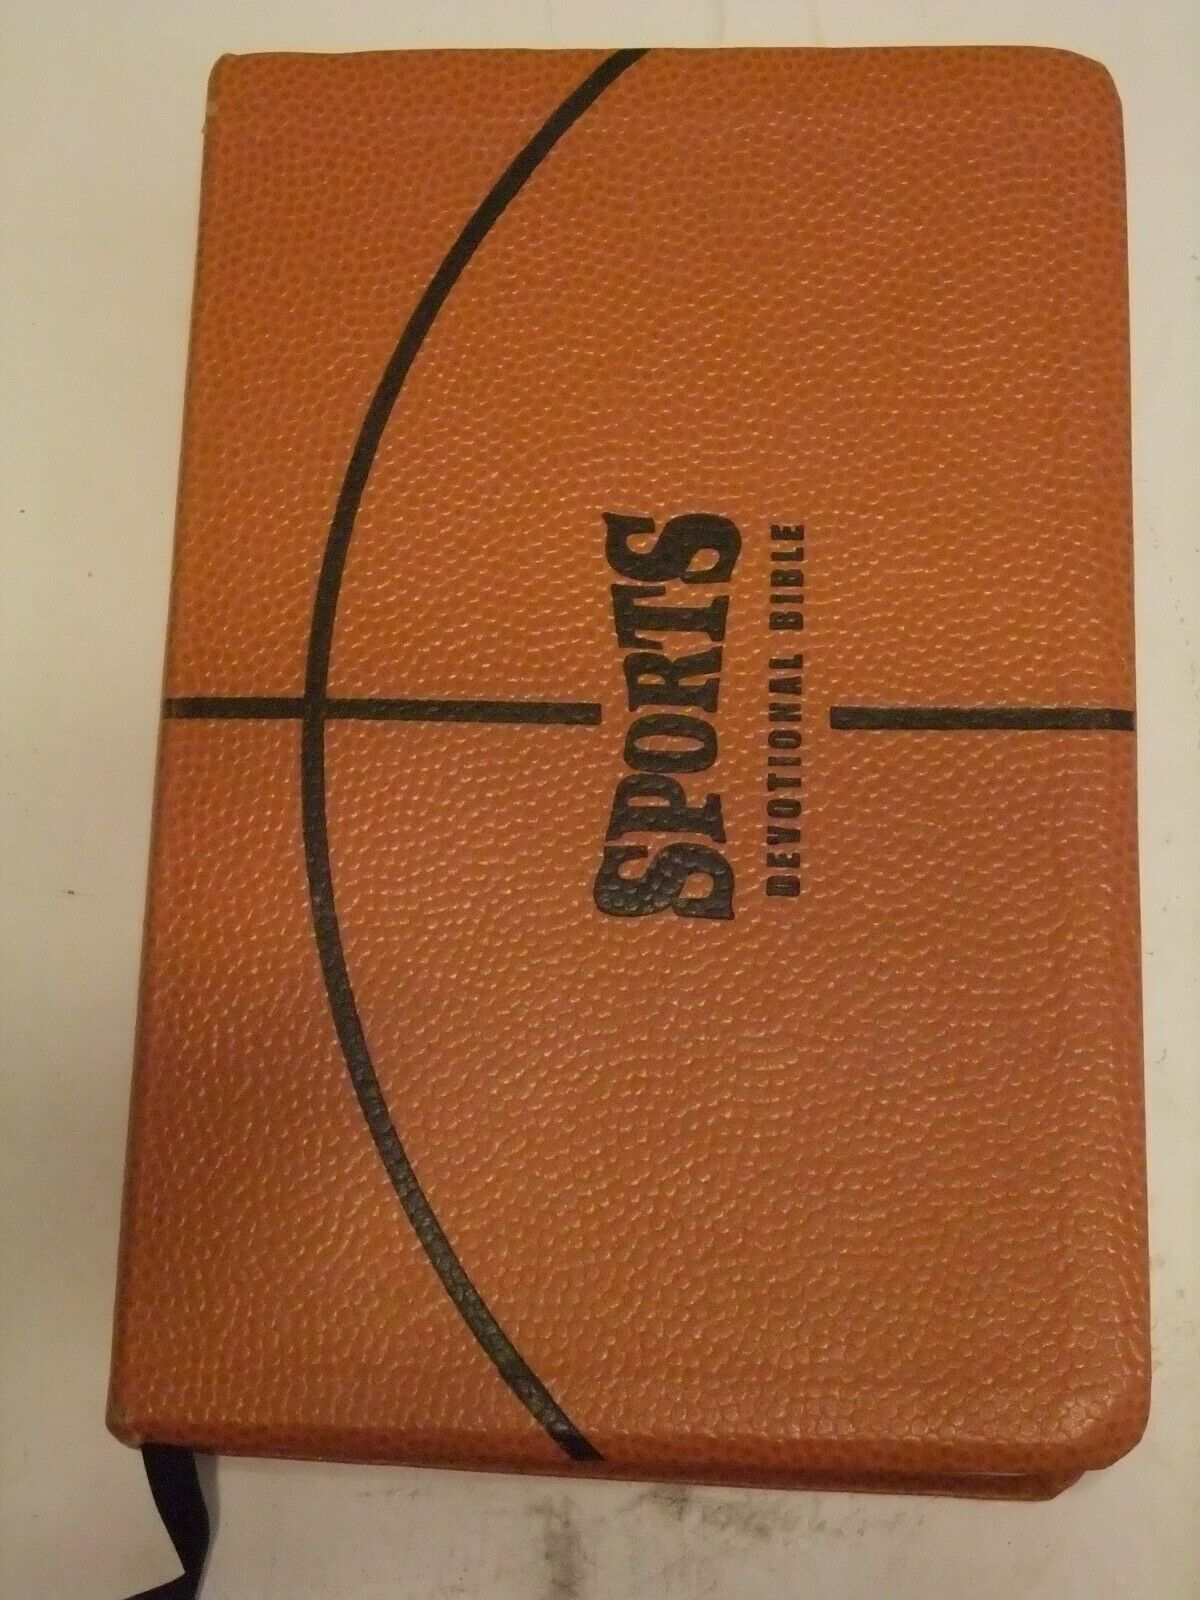 Primary image for Zondervan SPORTS DEVOTIONAL BIBLE By David Branon